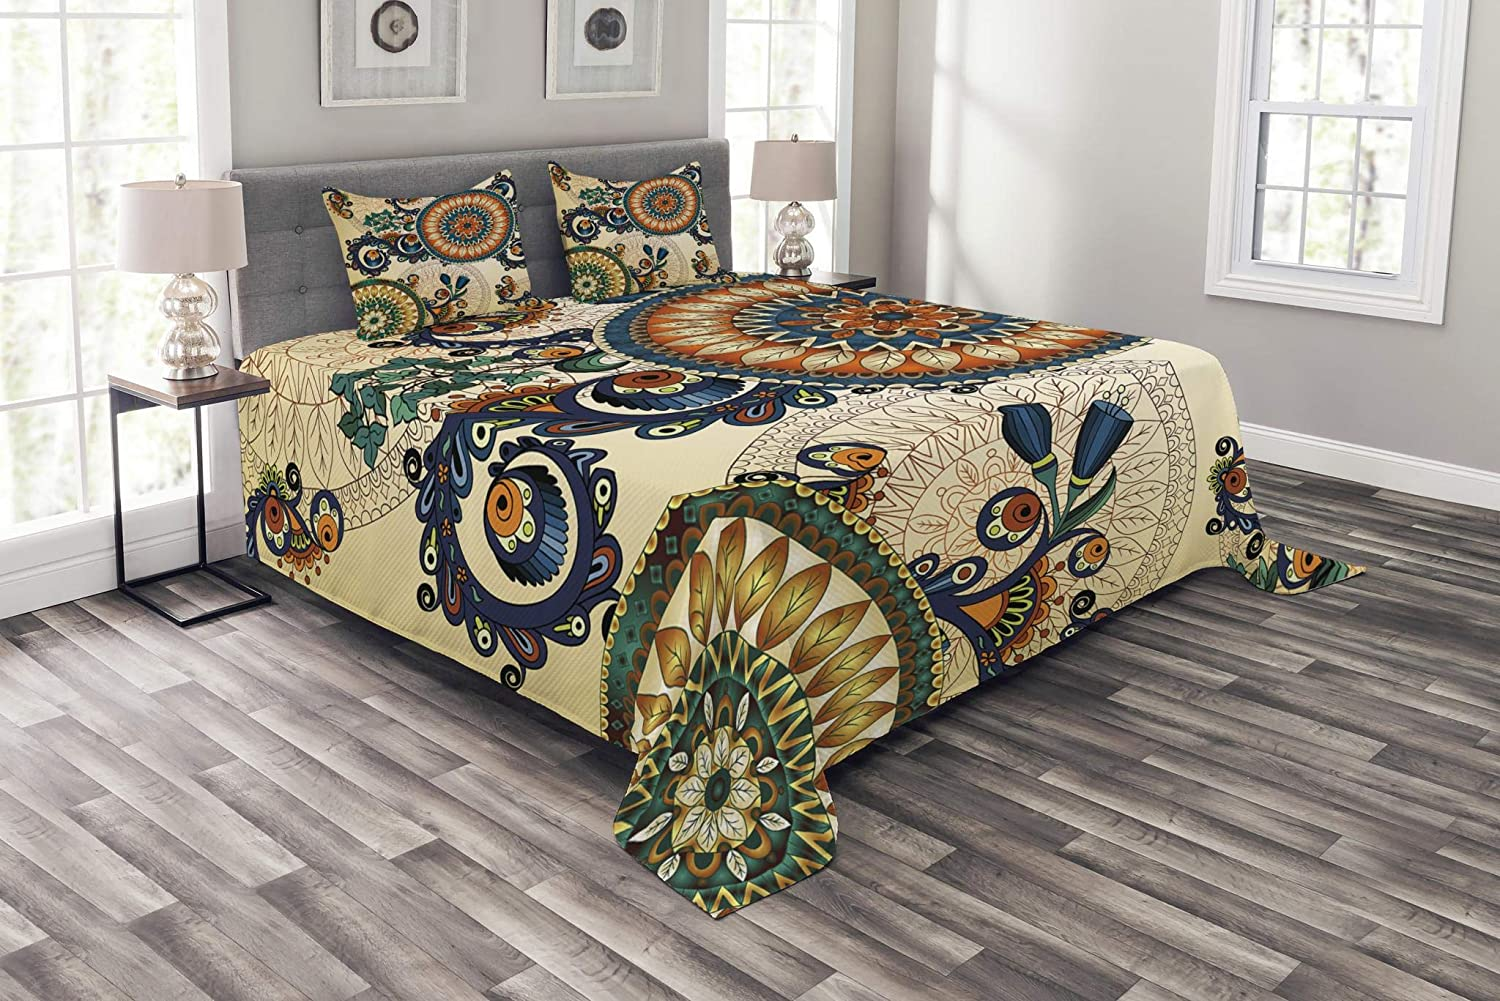 Lunarable Ethnic Bedspread, Floral Boho Pattern with Floral and Peacock Feather Folk Image, Decorative Quilted 3 Piece Coverlet Set with 2 Pillow Shams, Queen Size, Soft Beige